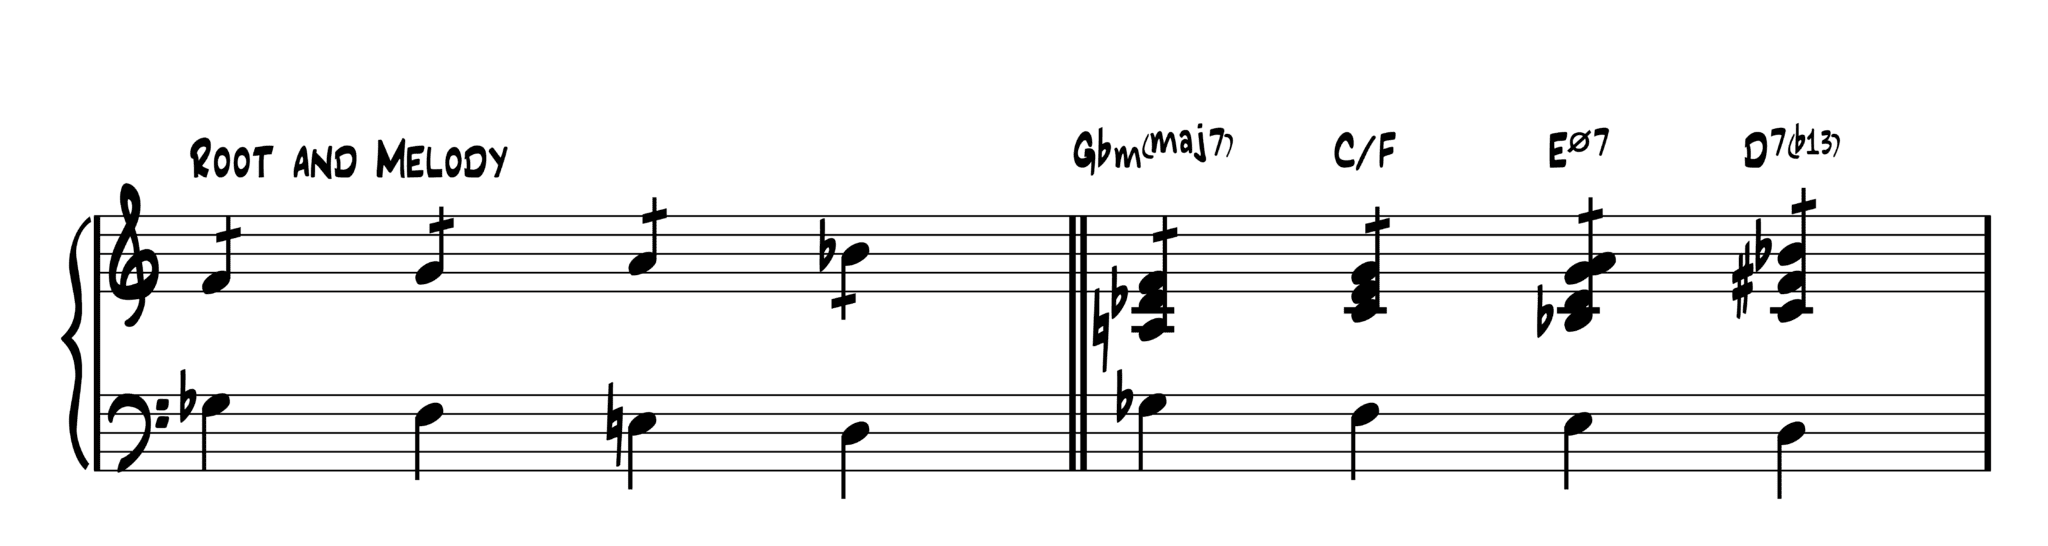 rules for harmonizing piano tunes